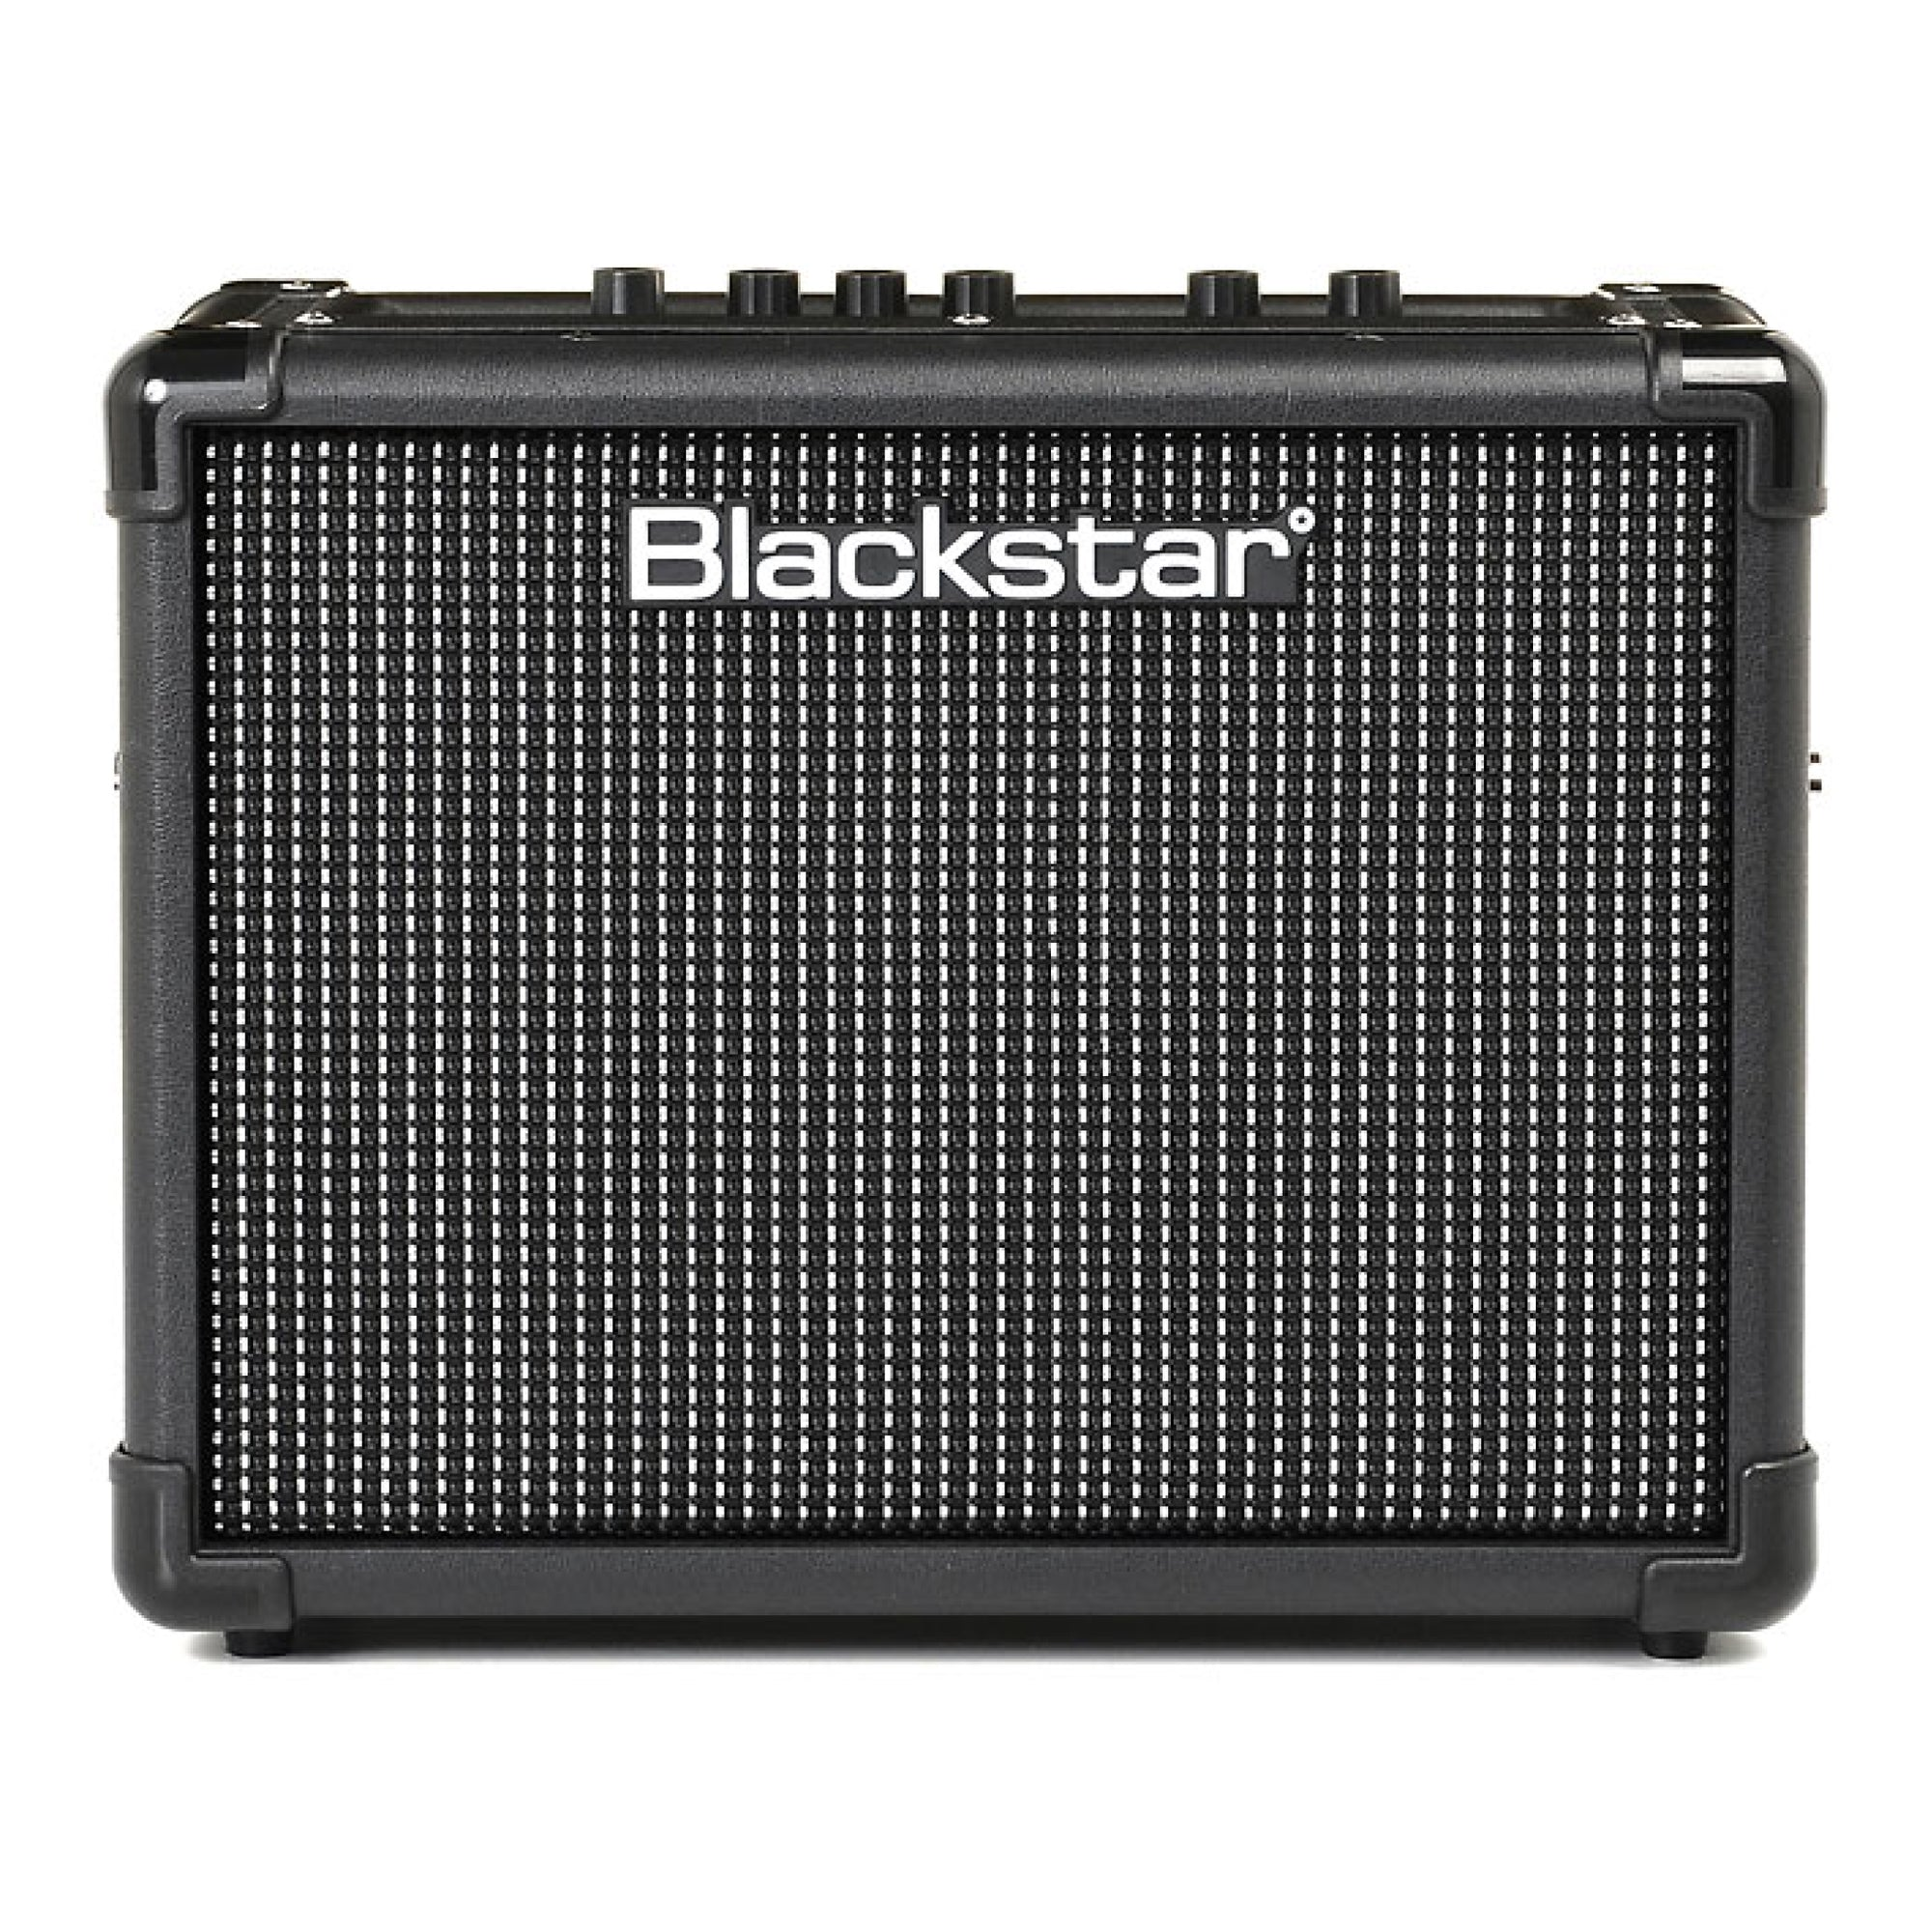 Blackstar ID:Core 10 V2 2x5W Super Wide Stereo Combo Amp - Tarpley Music Company, Inc.